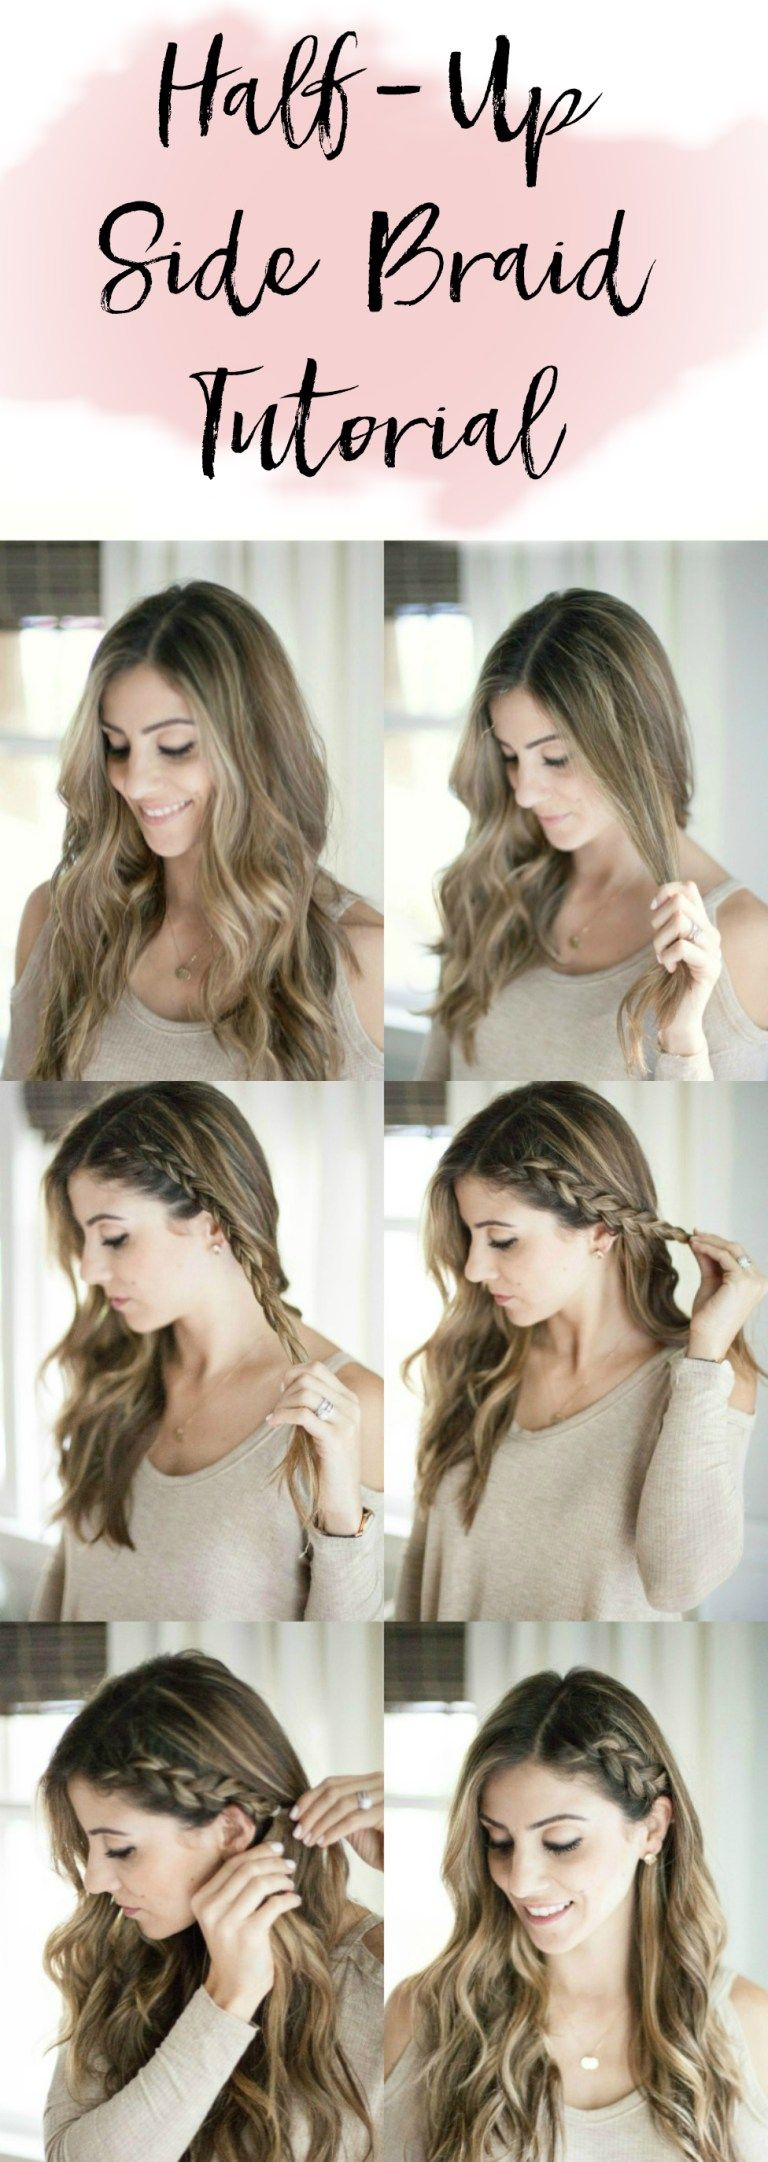 Beauty Half Up Side Braid Hair Tutorial Hair And Other Things